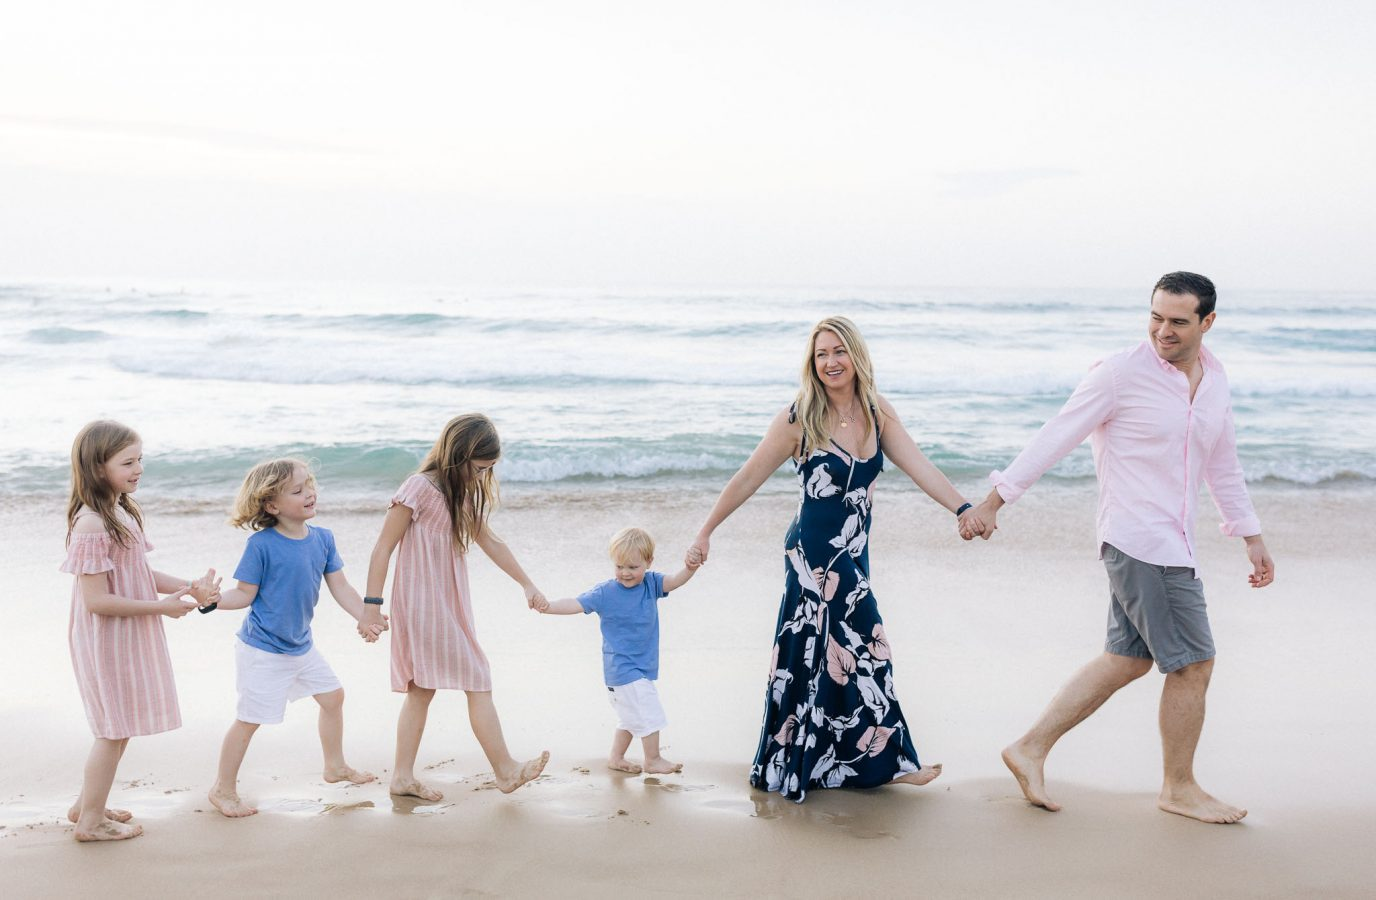 Family photographer bondi beach sydney australia-0002